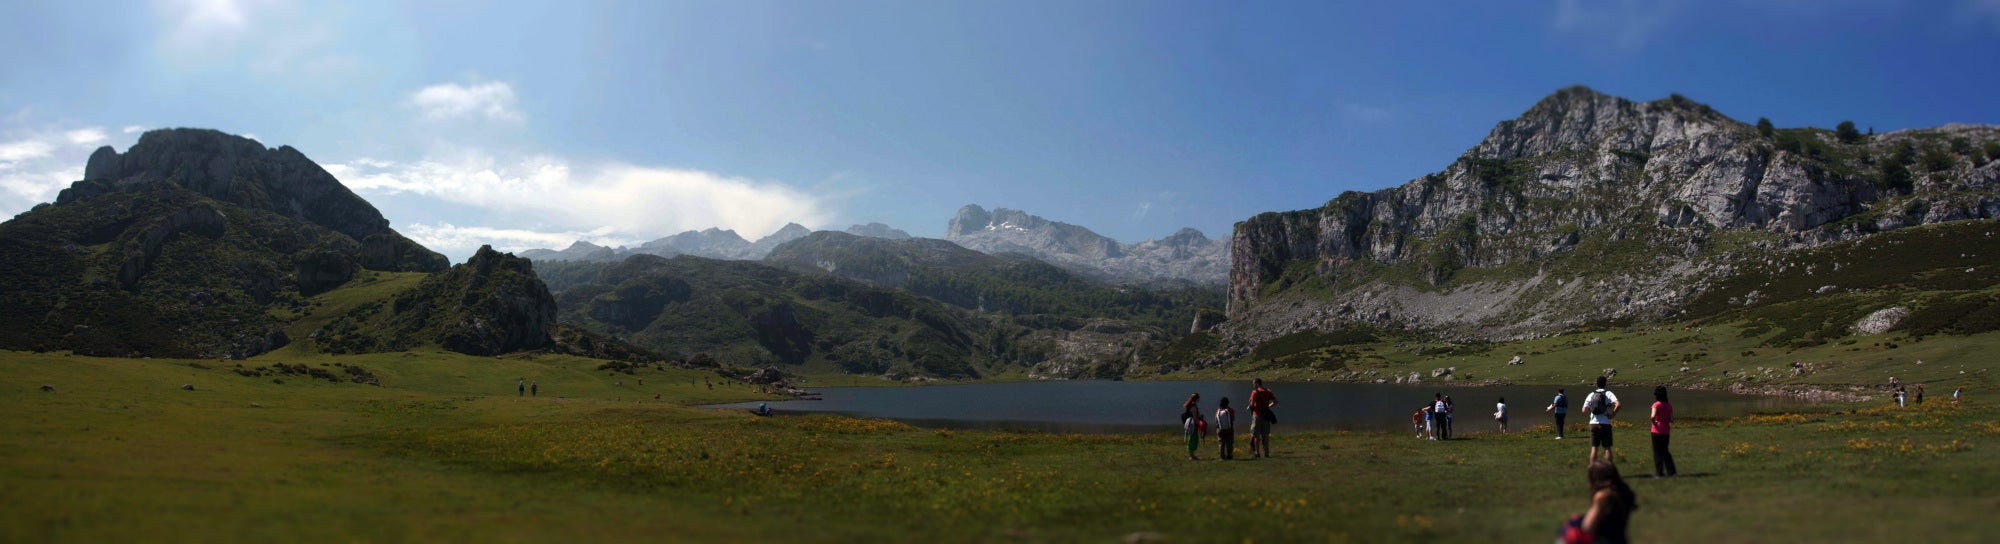 Steppe in The Lakes of Covadonga - Enol and Ercina lakes